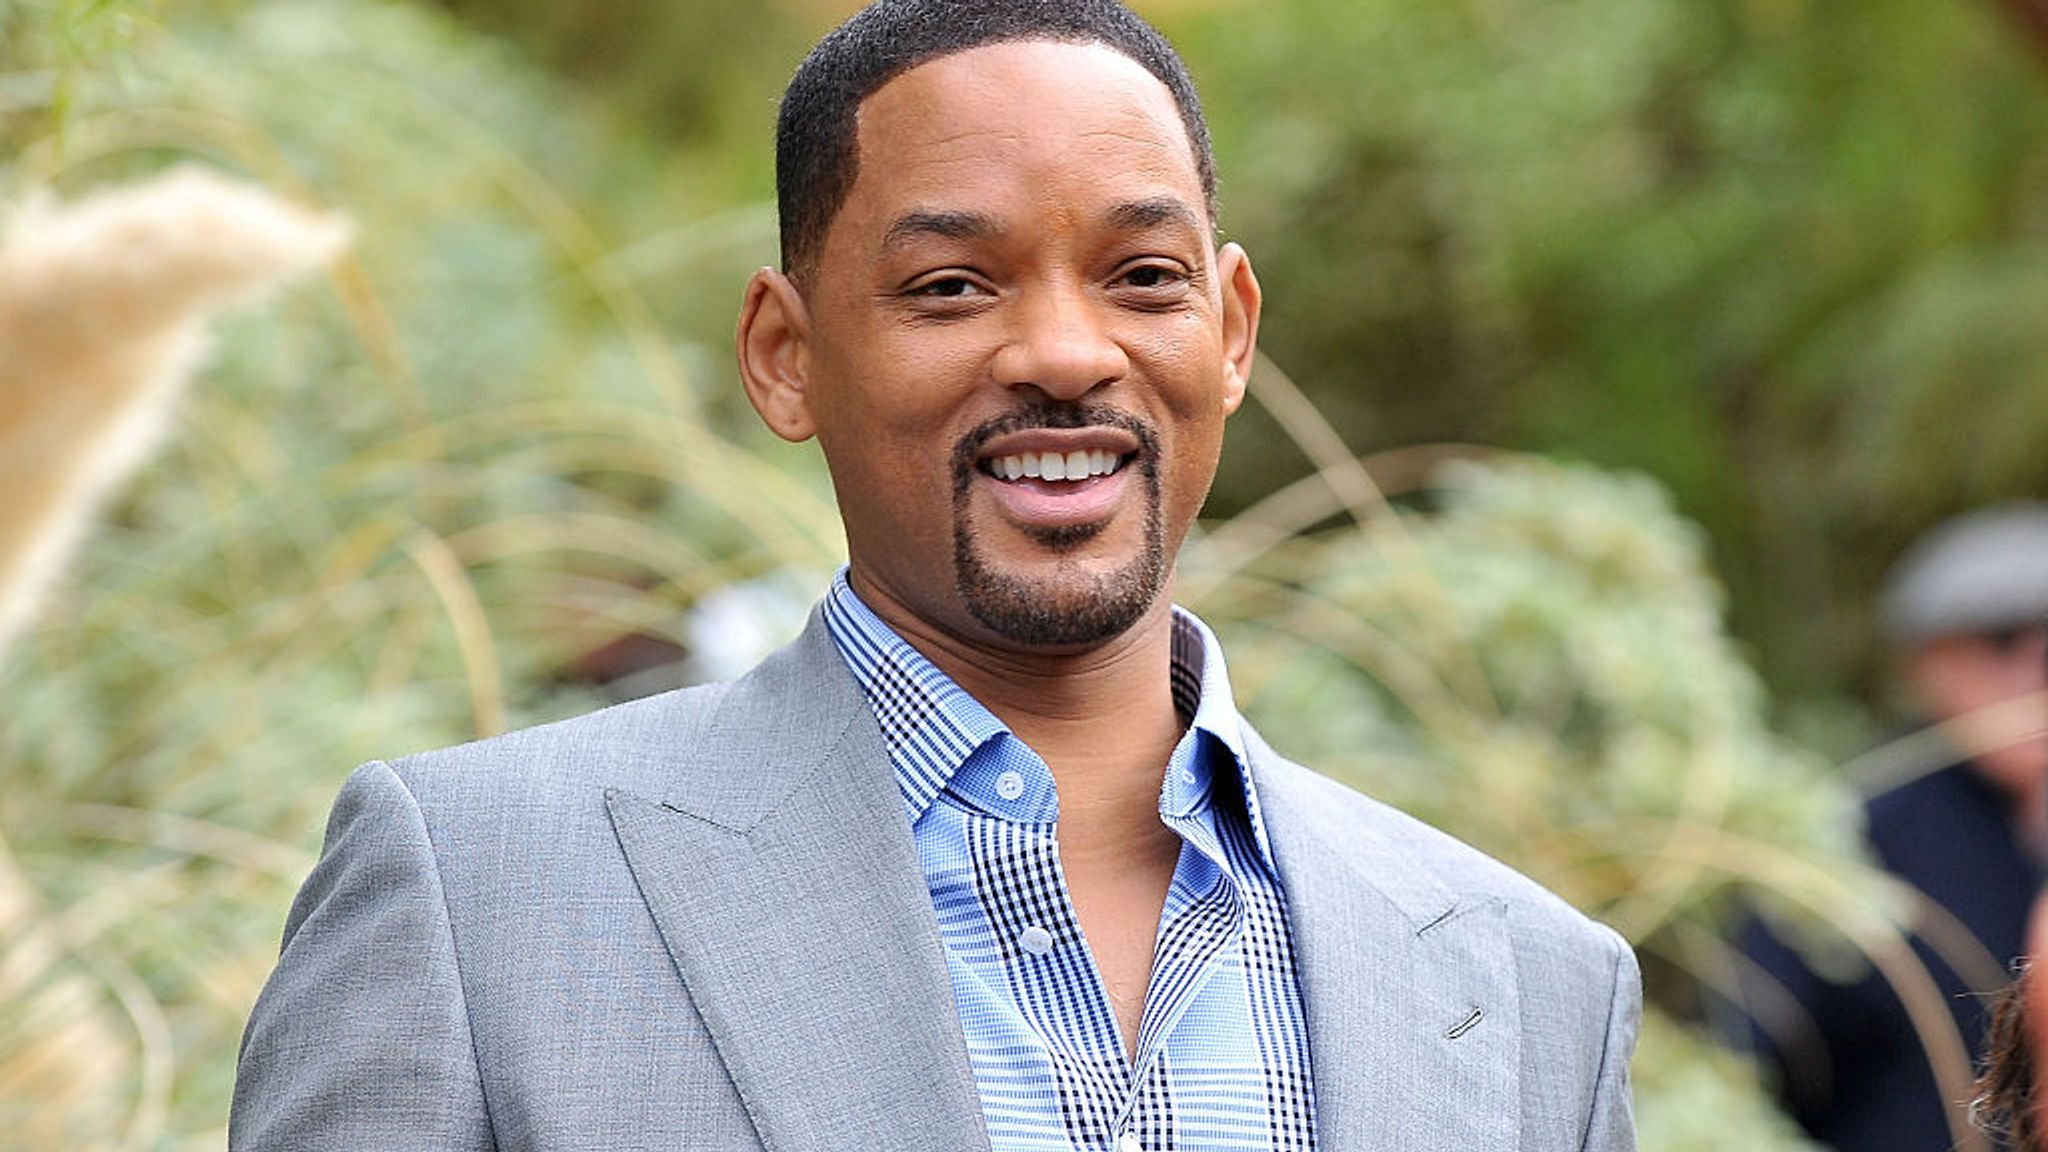 Will Smith started out as a rapper before becoming one of the biggest names in Hollywood